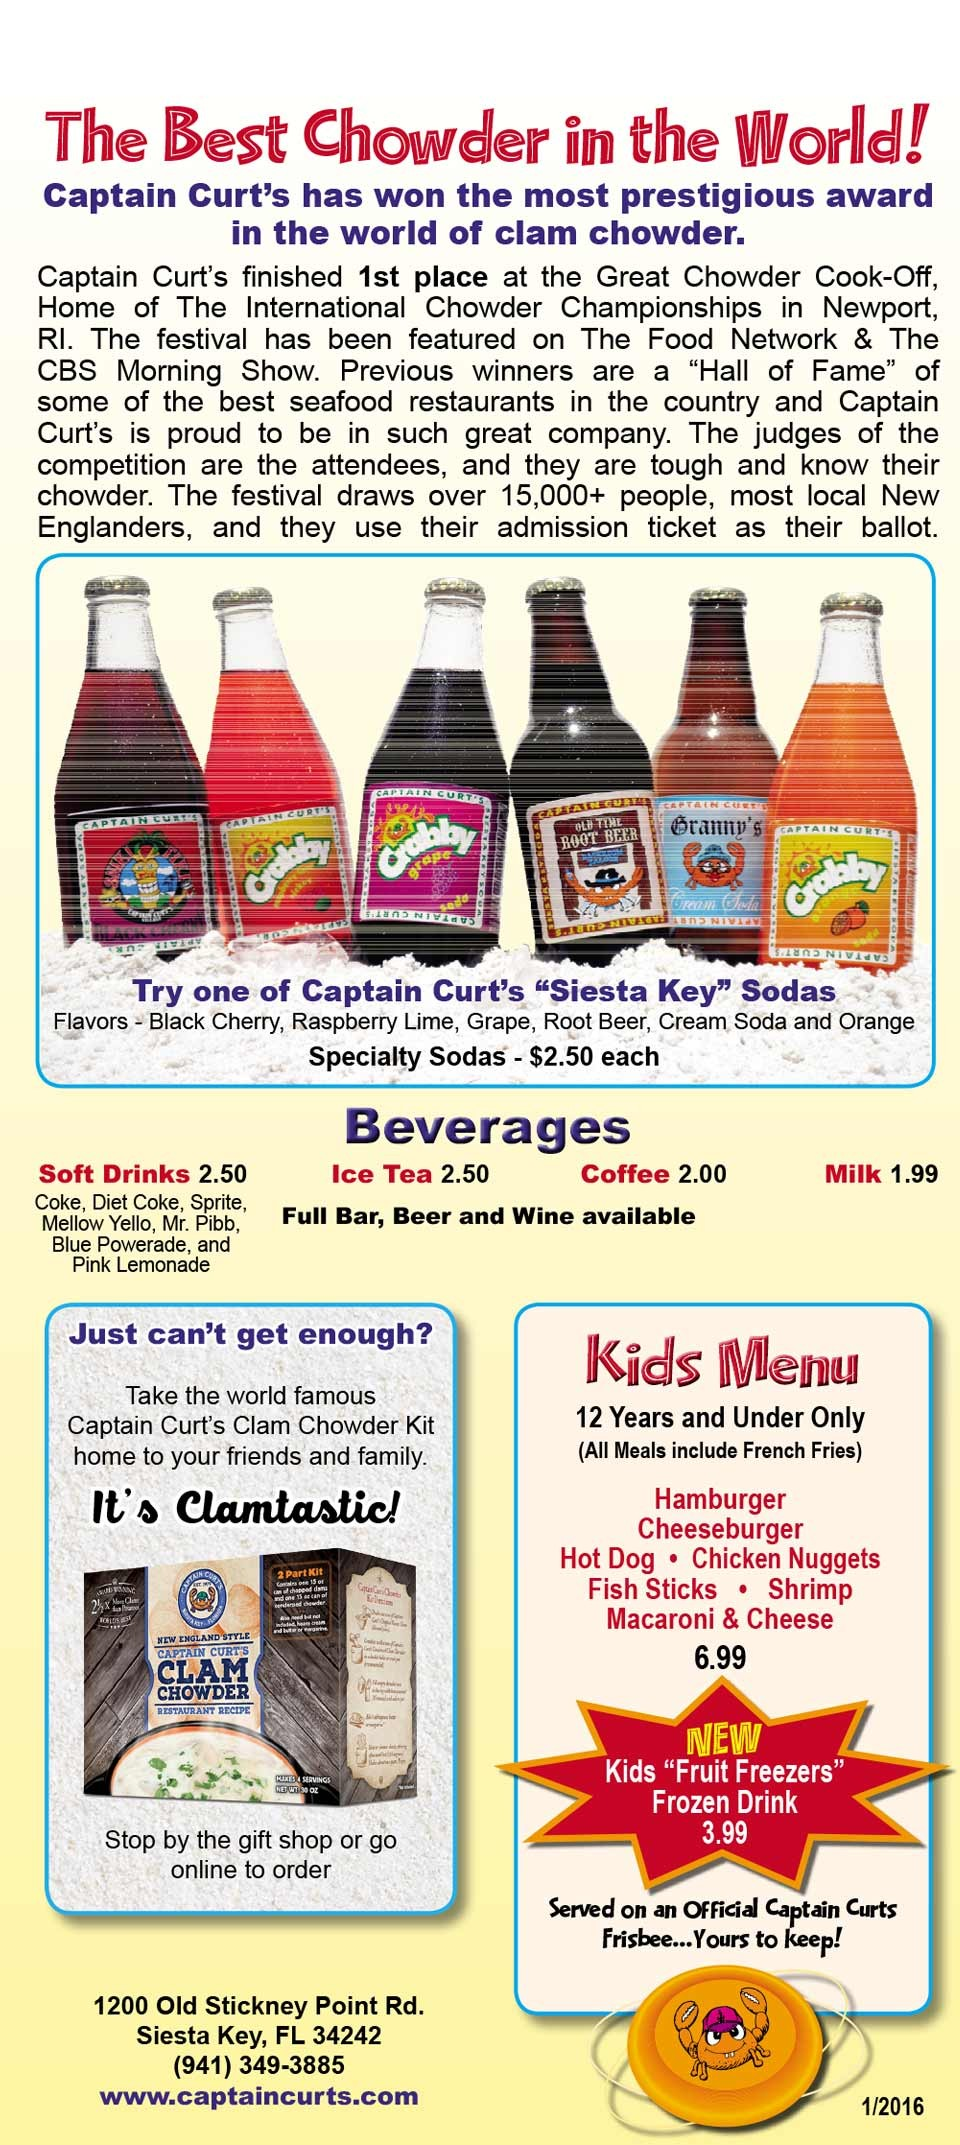 Siesta Key Family restaurant, kids menu